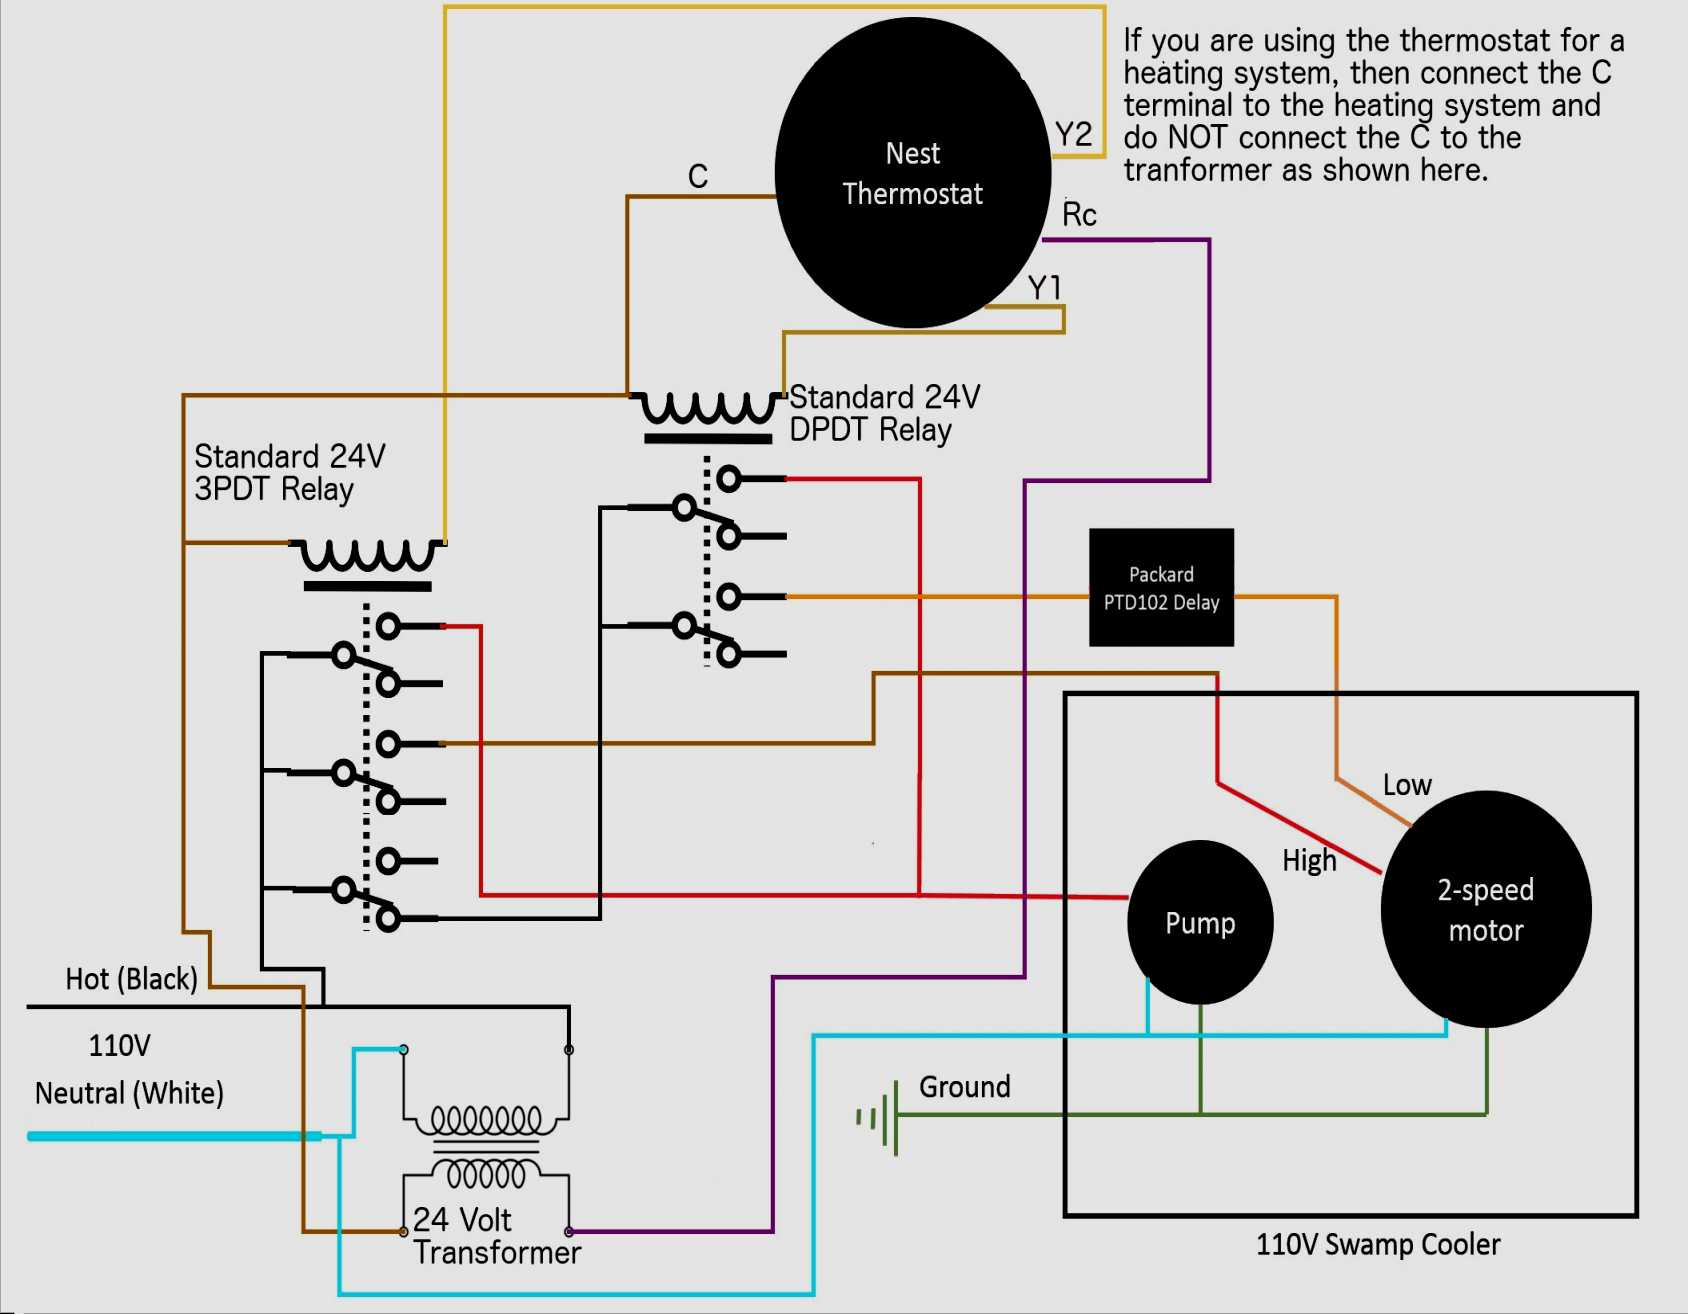 Wiring Diagram For Humidifier | Best Wiring Library - Aprilaire 224 Wiring Diagram Nest